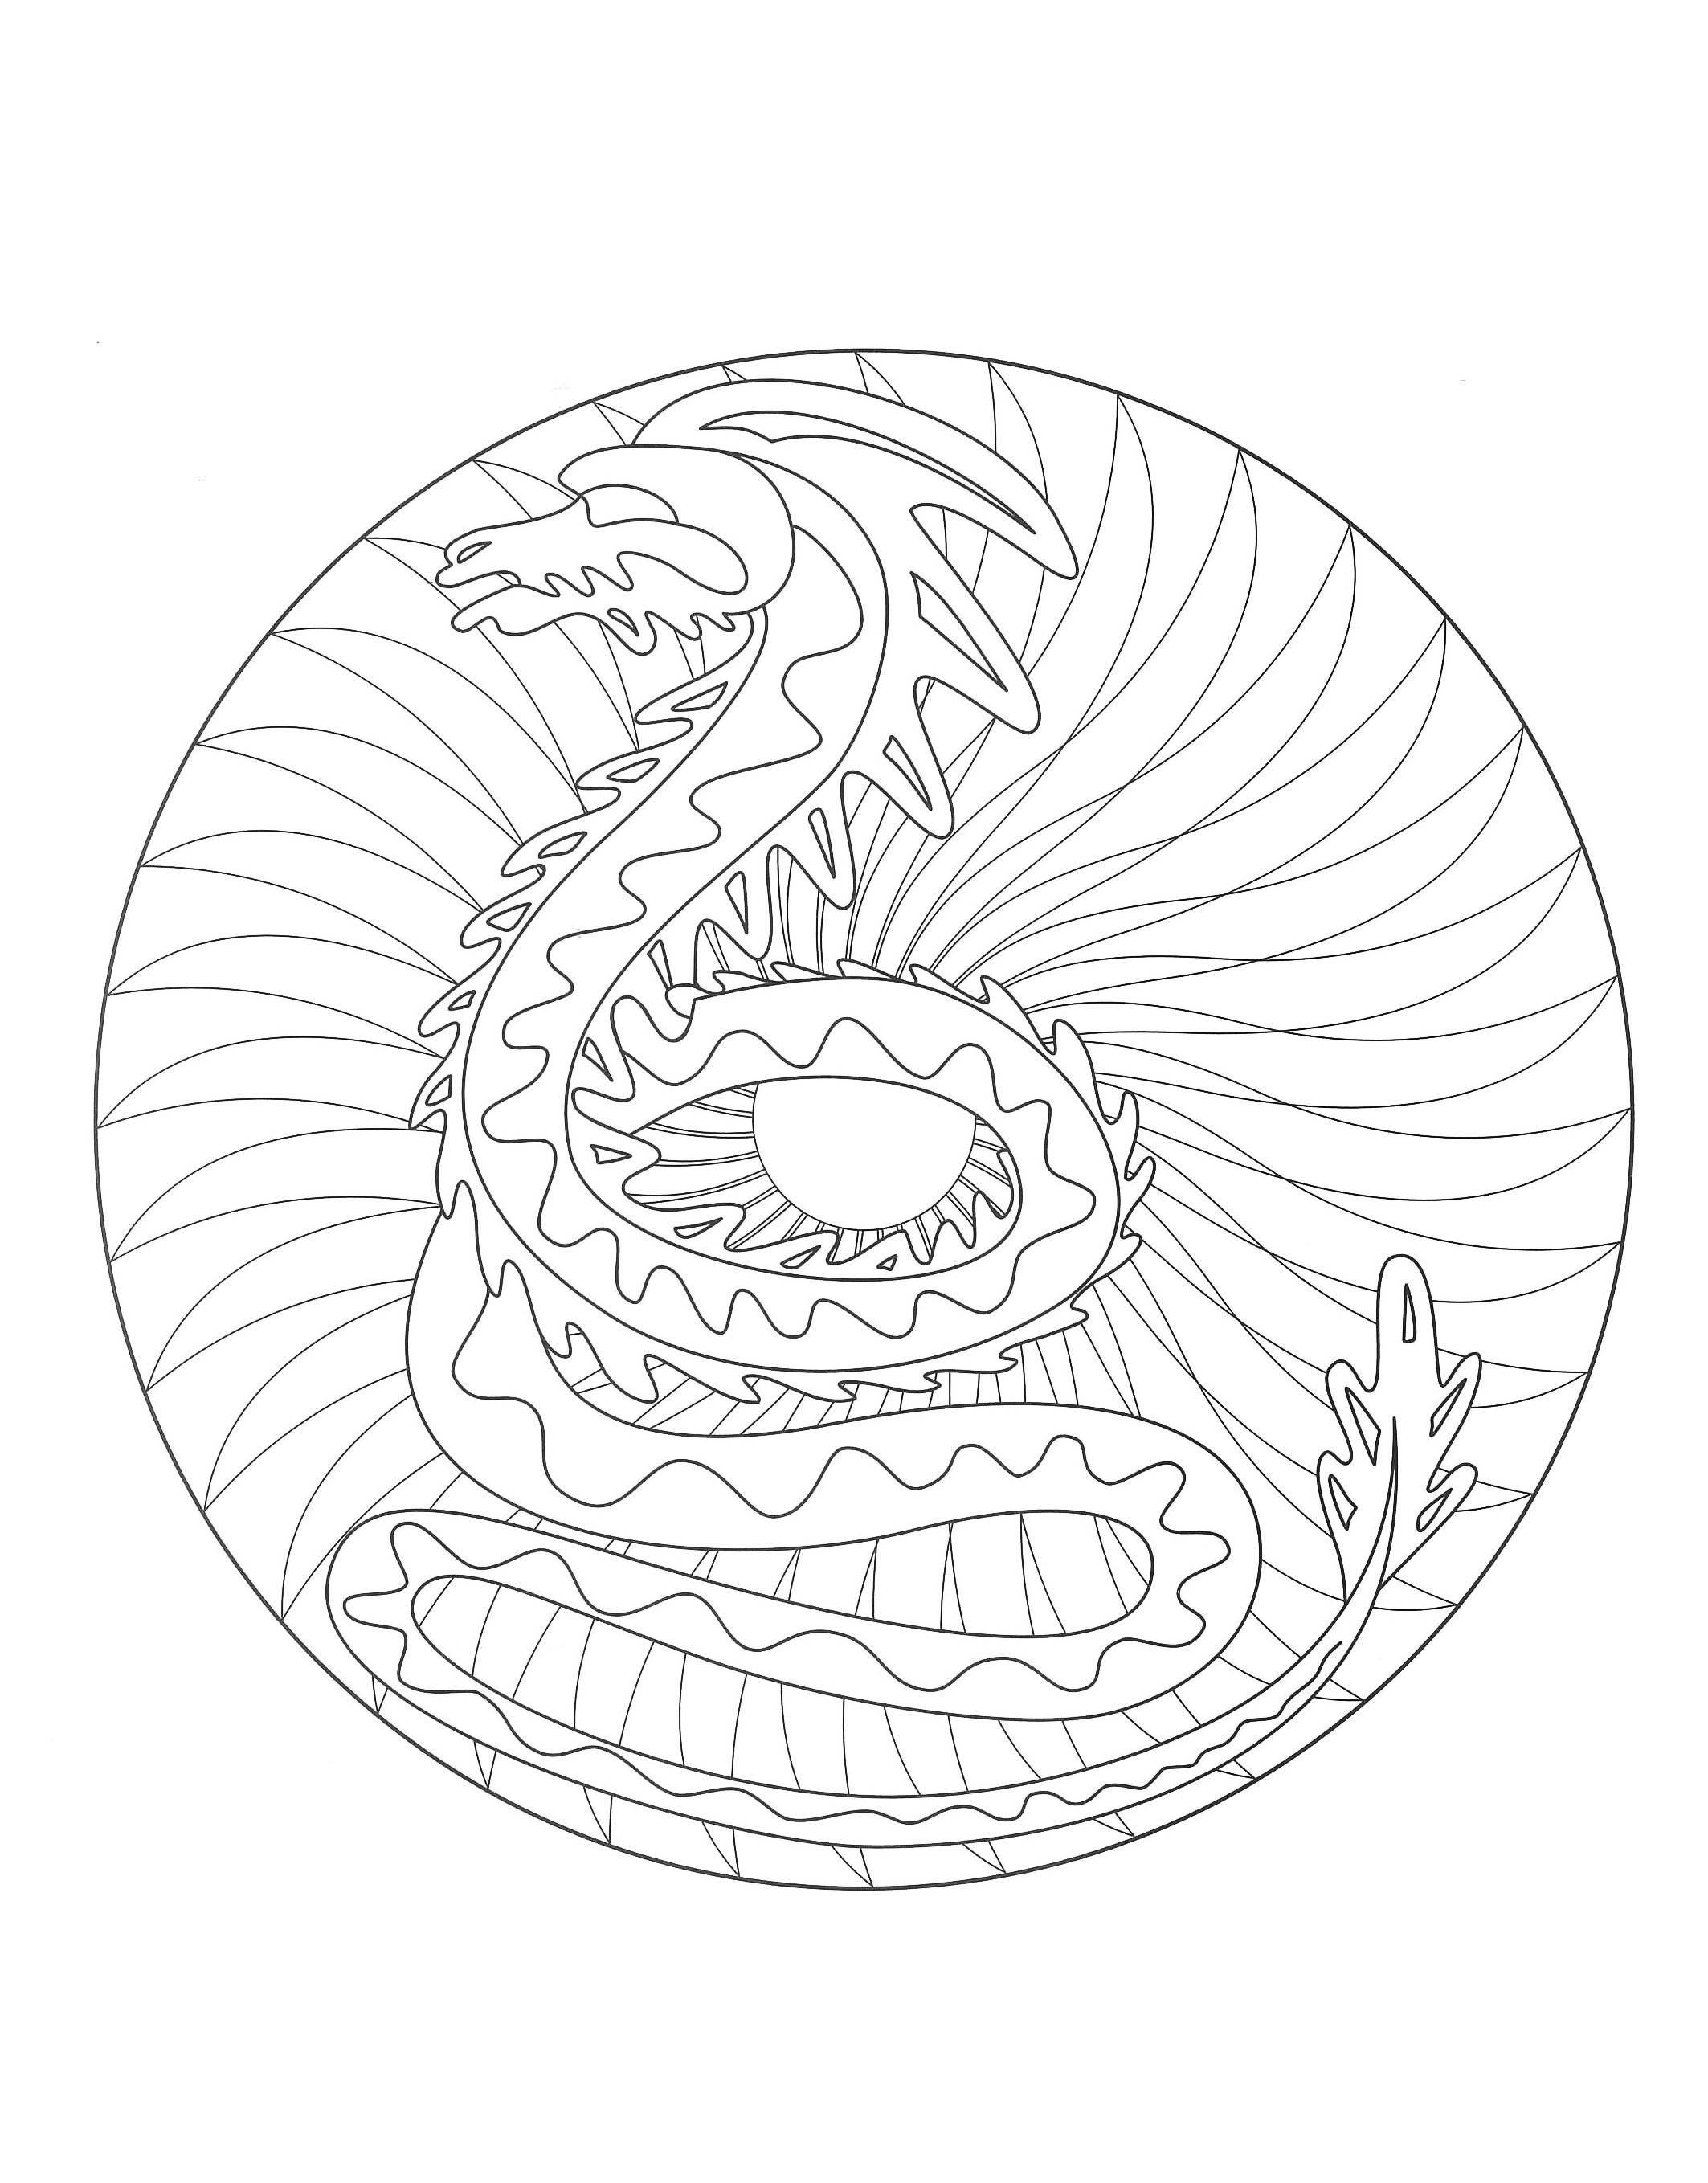 a imprimer mandala dragon 2 coloriage mandalas coloriages pour enfants page 6. Black Bedroom Furniture Sets. Home Design Ideas